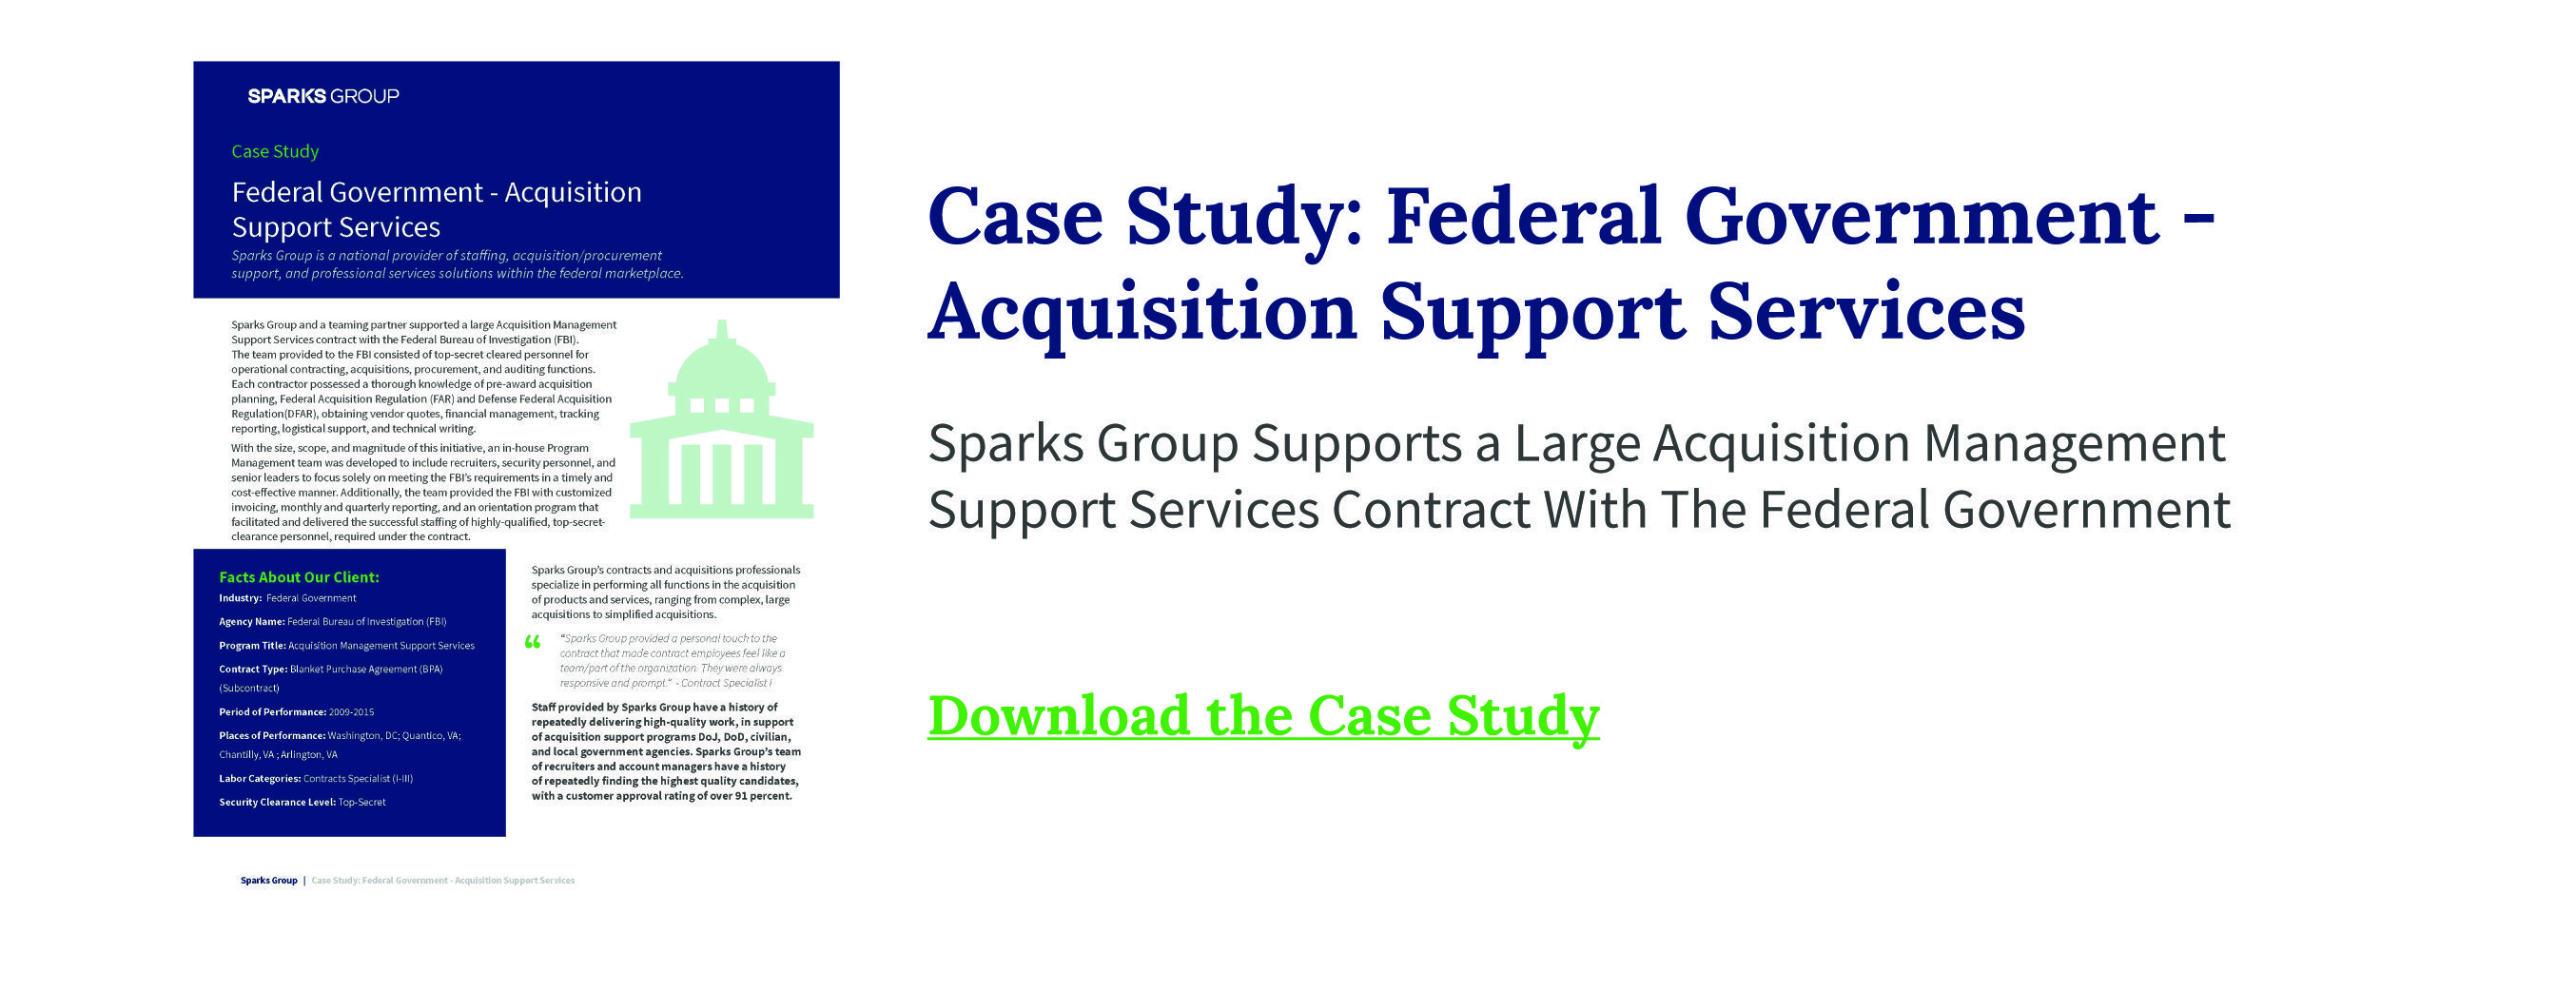 Case study: federal government - acquisition support services